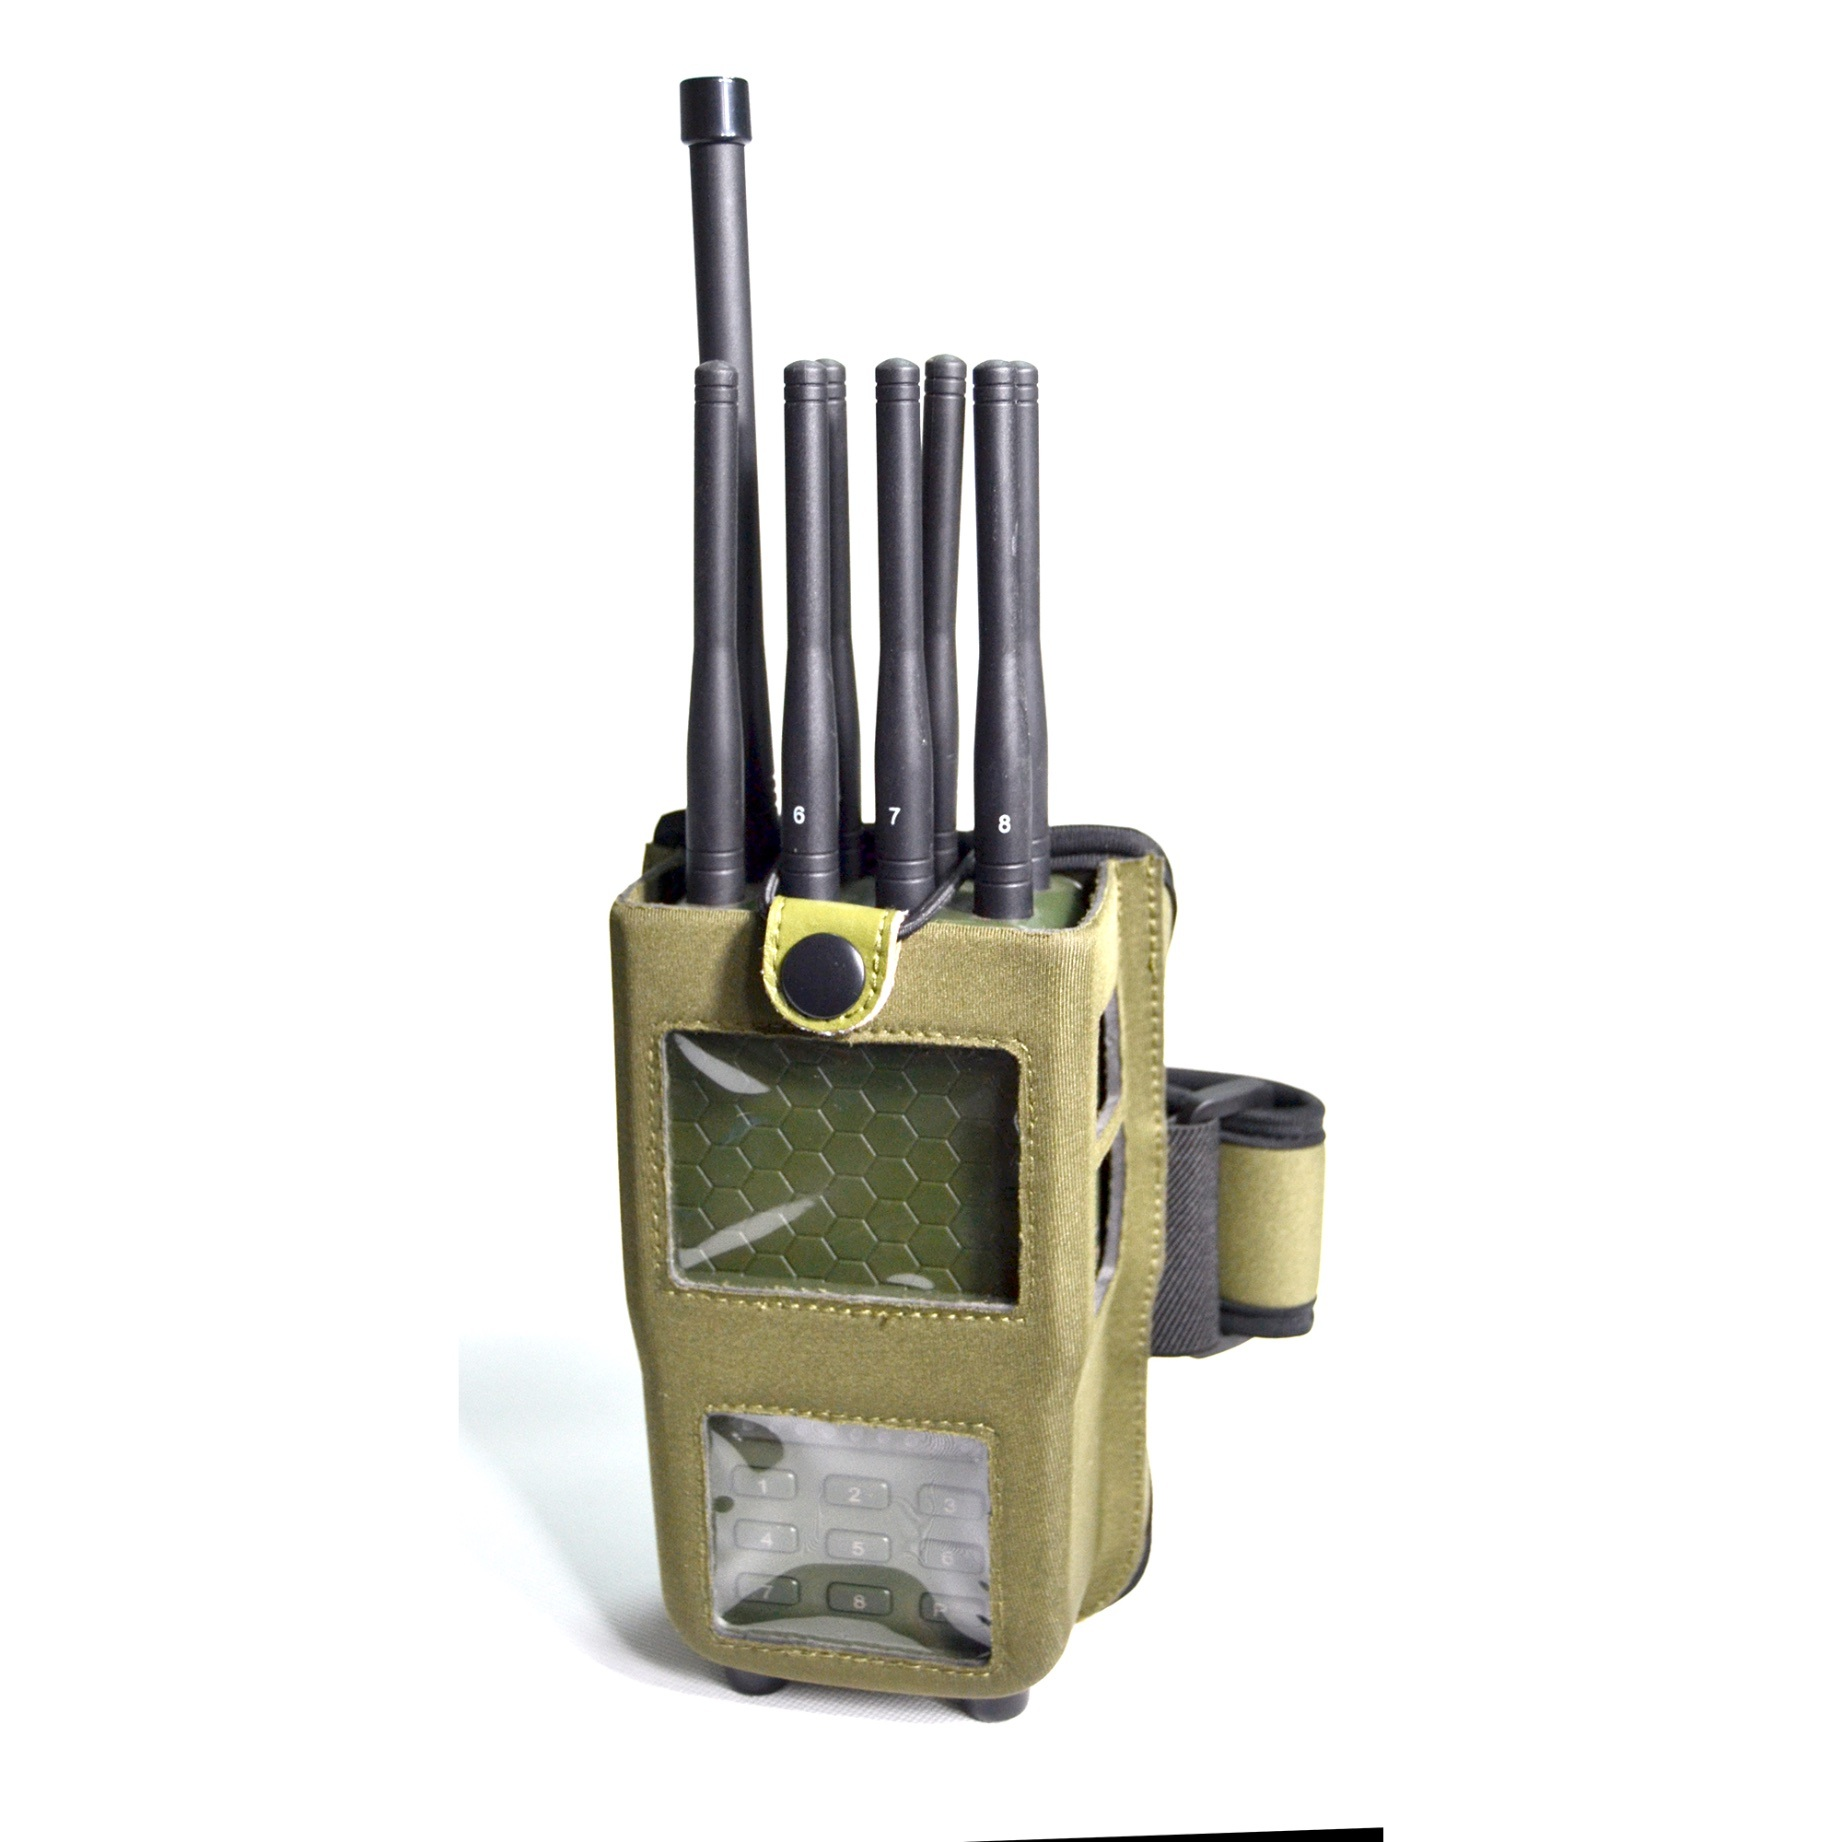 phone tracker jammer emp - China Newest Portable Hanheld High Power 8-Channel Cellphone 2g 3G 4G GSM CDMA Signal WiFi Radio Lojack Jammer,3G 4G Cell Phone, Lojack 173MHz,RC433/315MHz GPS Jammer - China Portable Eight Antenna for All Cellular GPS Loj, Lojack/WiFi/4G/GPS/VHF/UHF Jammer